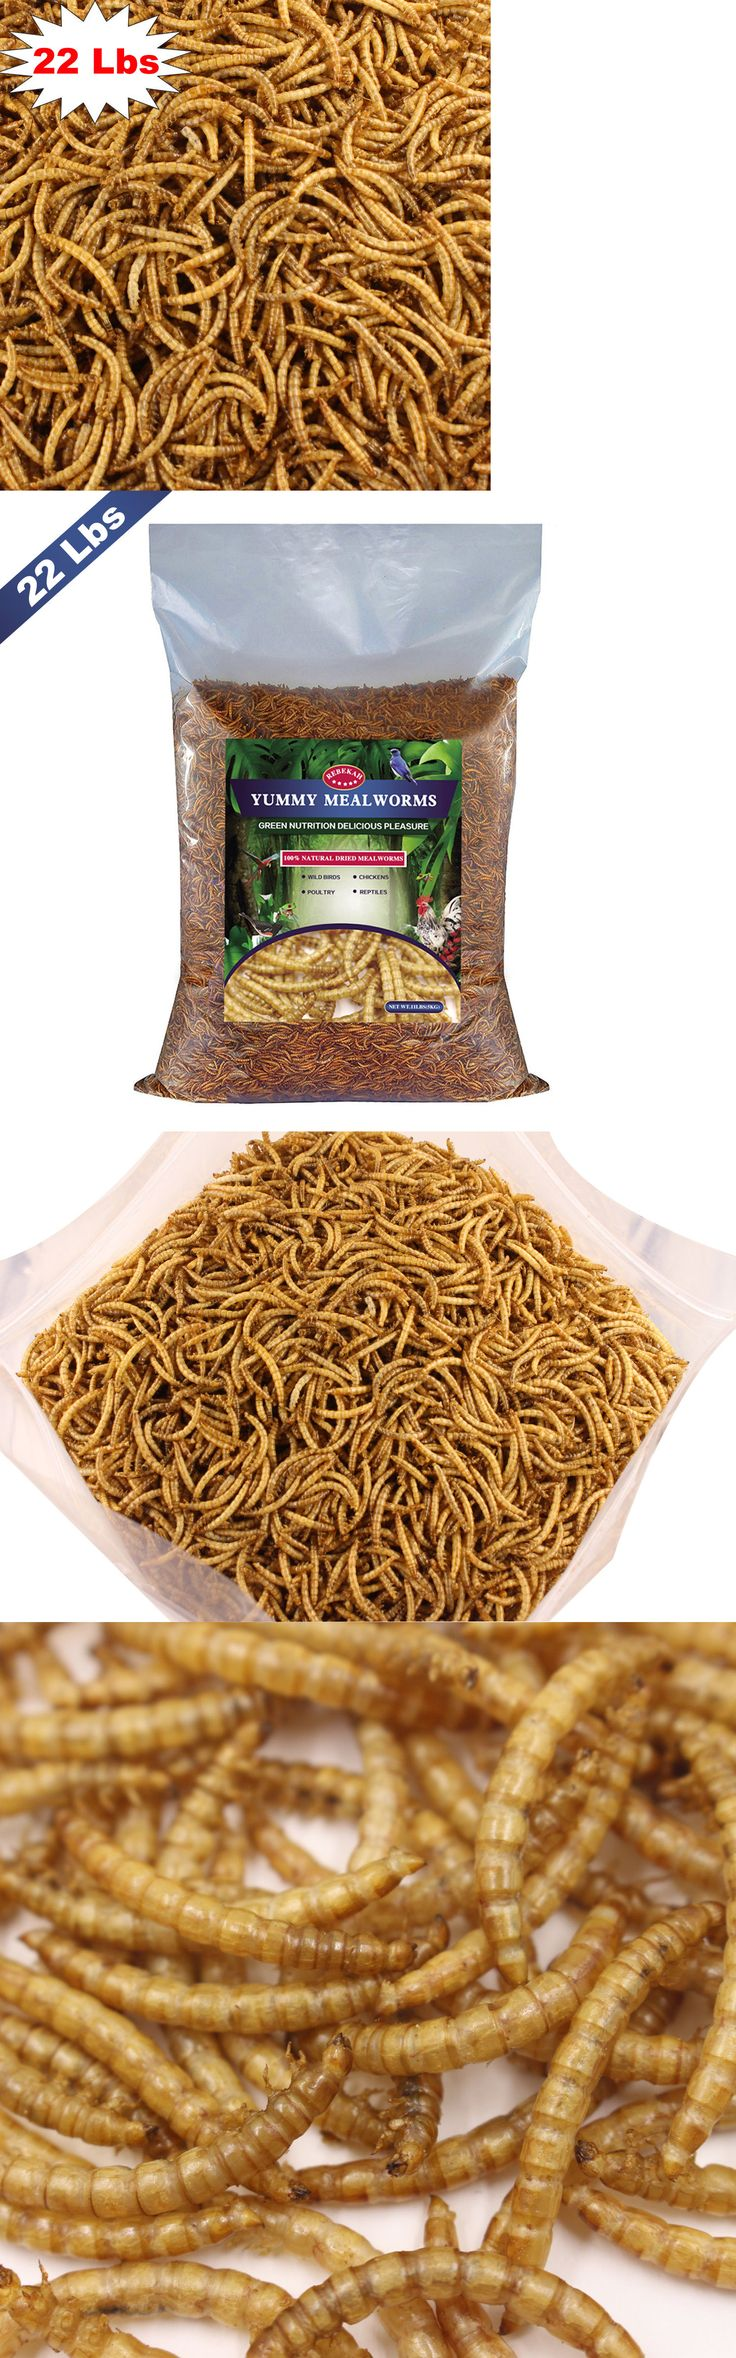 Food and Treats 116494: Bulk Dried Mealworms - Treats For Chickens And Wild Birds ( 22 Lbs ) -> BUY IT NOW ONLY: $115.99 on eBay!